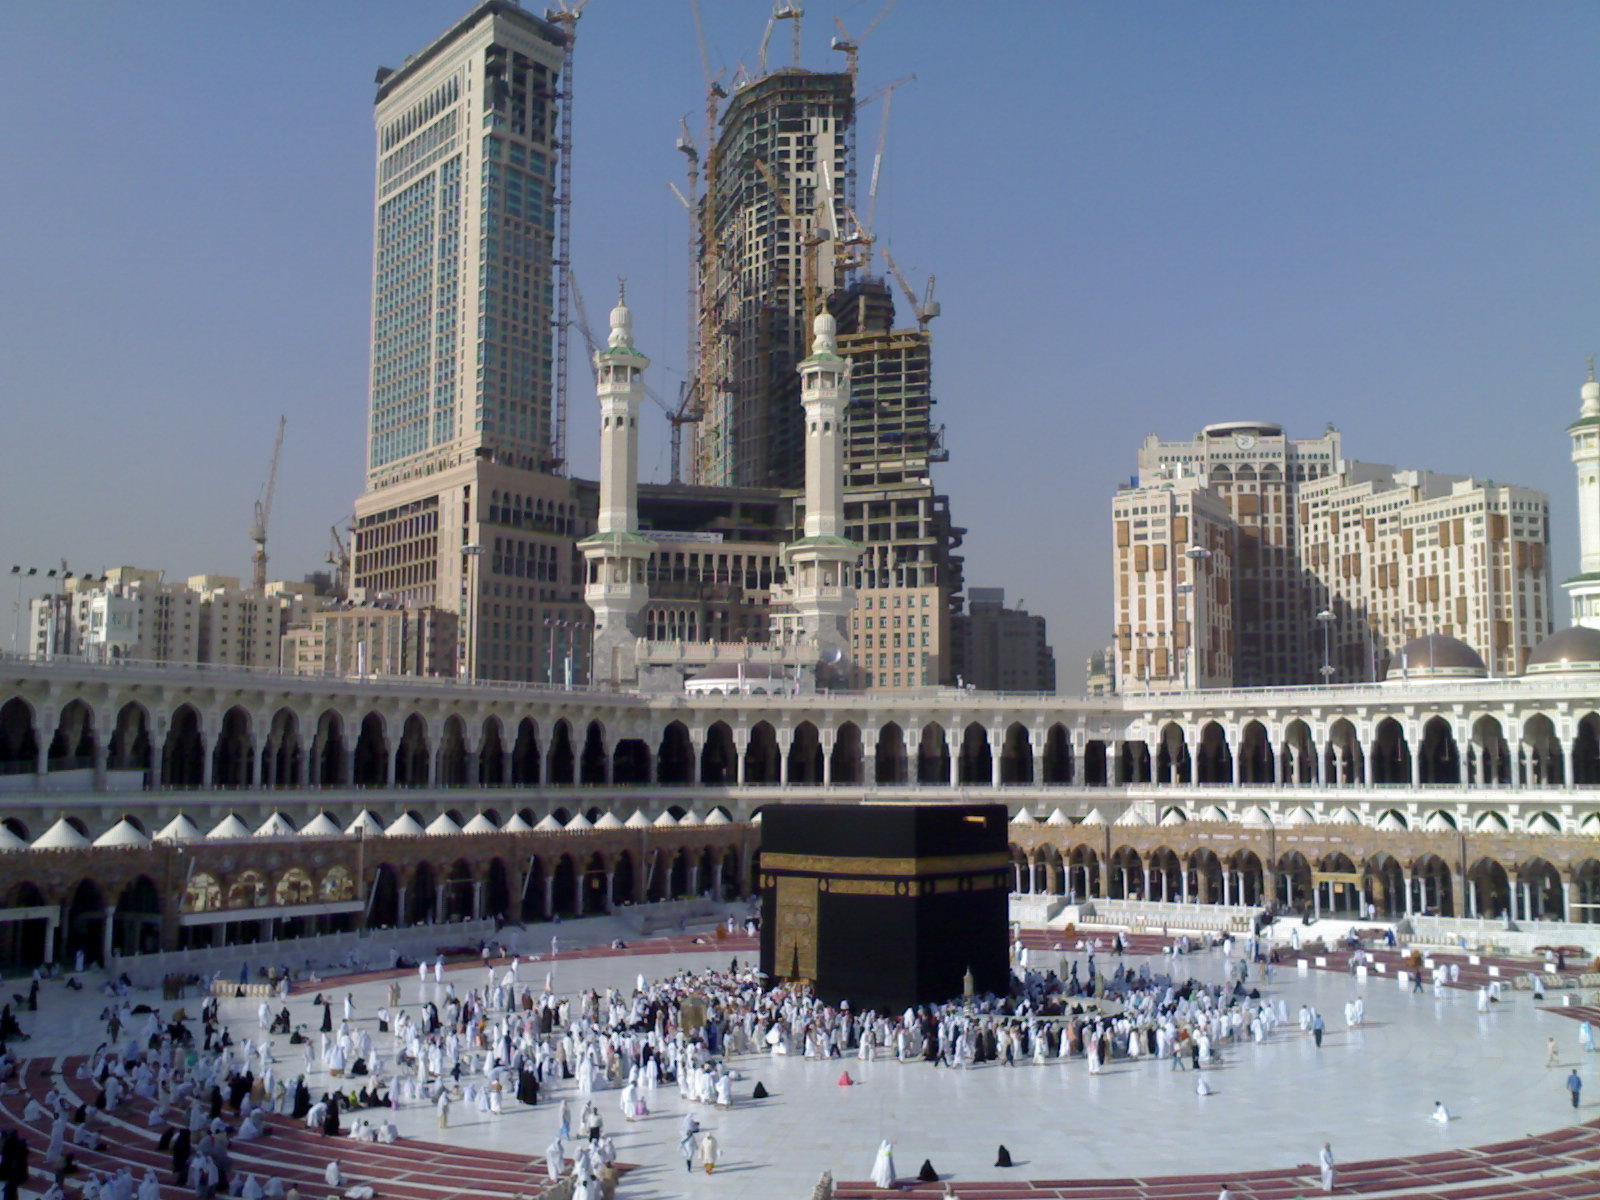 The Holy Mosque in Mecca. Photo by Meshal Obeidallah / Wikimedia Commons.